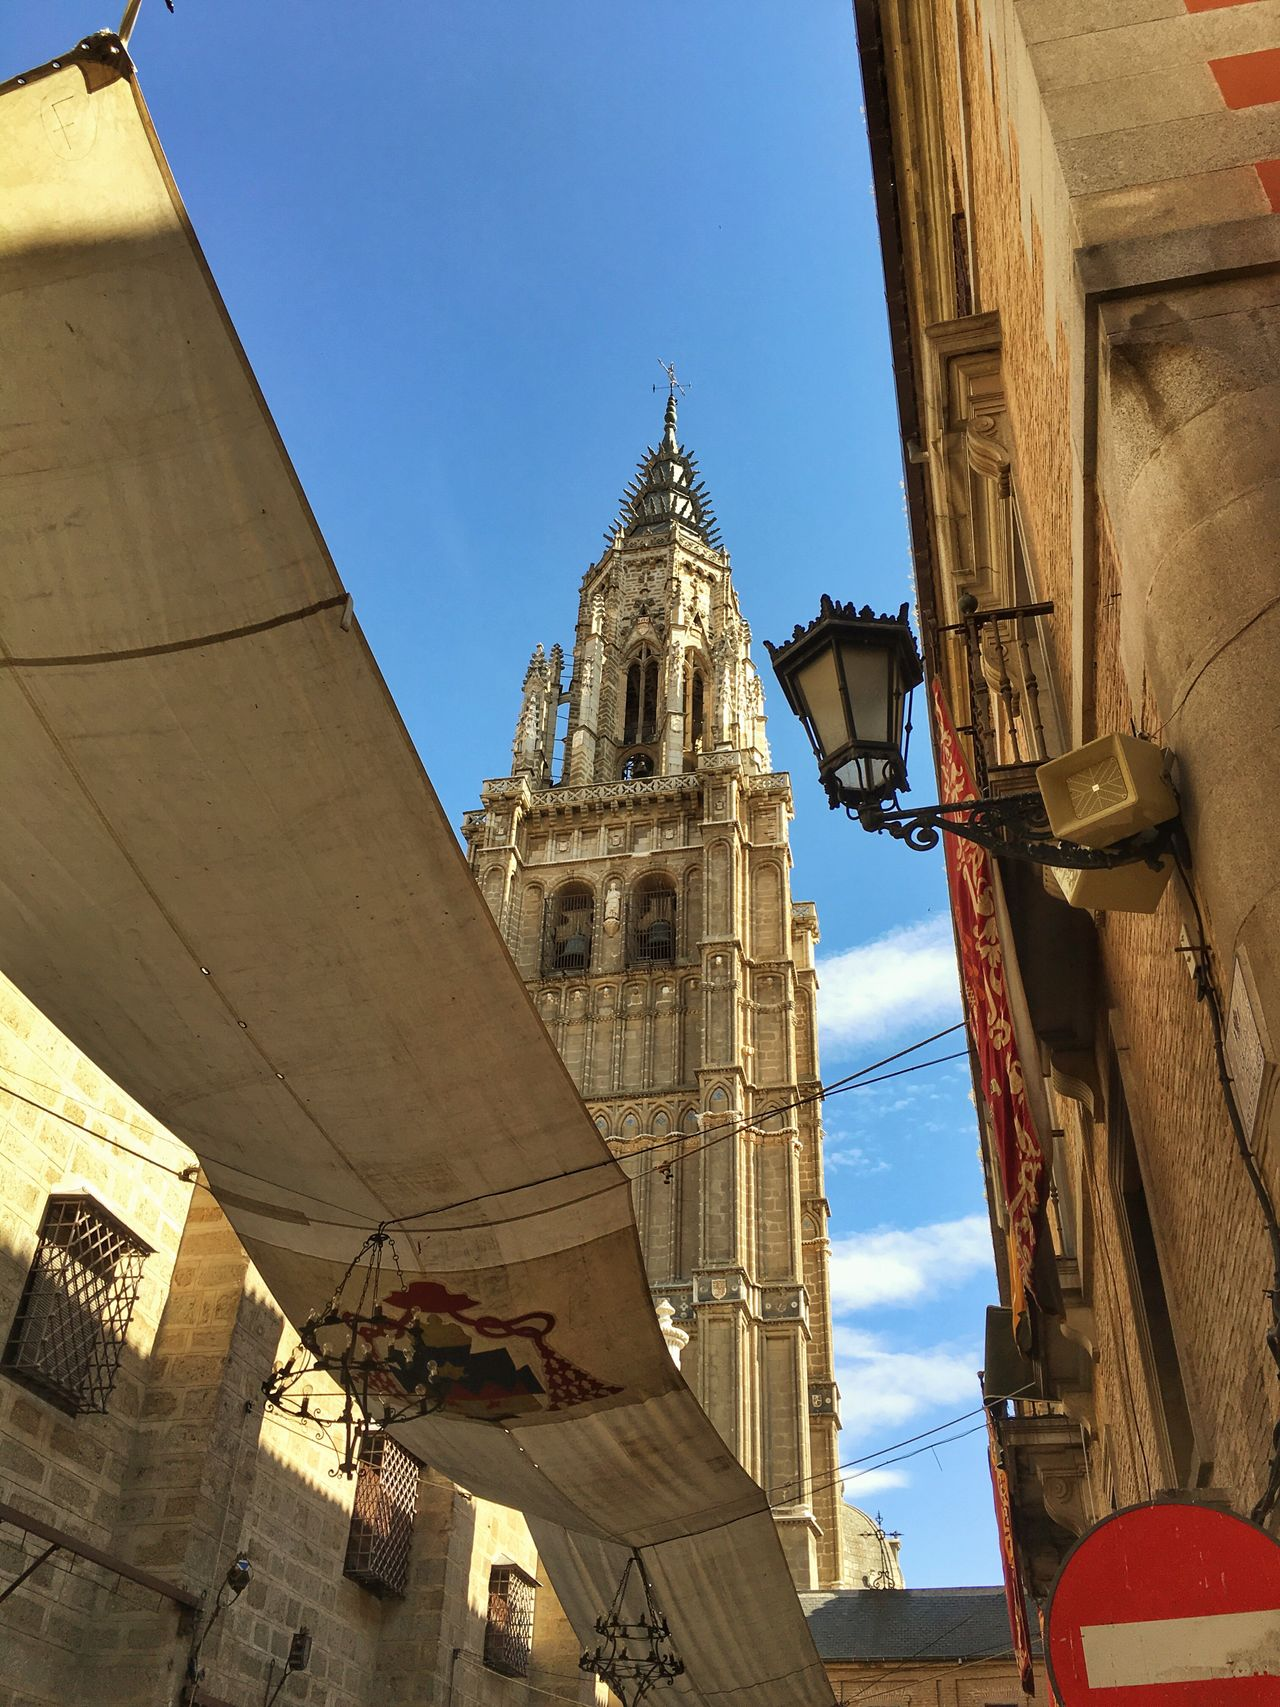 Architecture Building Exterior Low Angle View Place Of Worship Travel Destinations Day No People Tourism Toledo Spain España🇪🇸